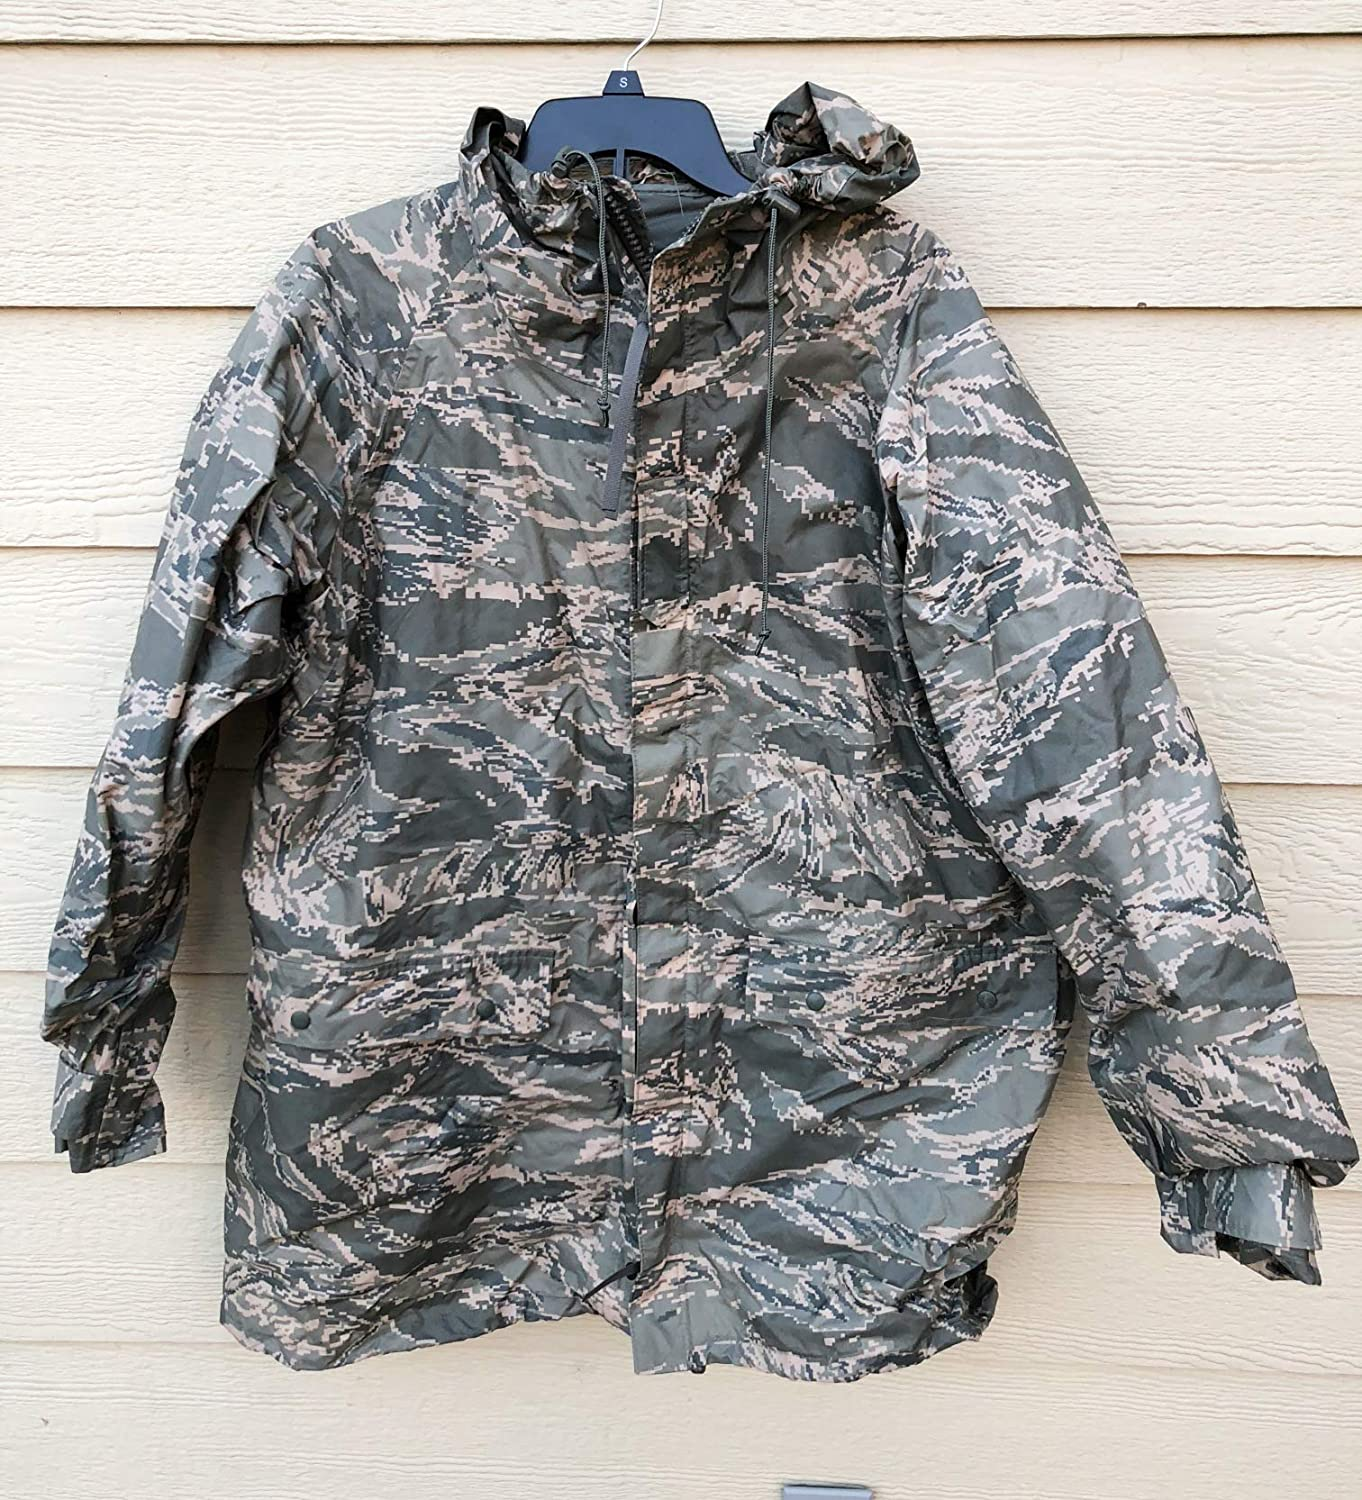 Genuine Usaf Apecs Abu Tiger Stripe Improve Rainsuit Parka With Liner - Small.